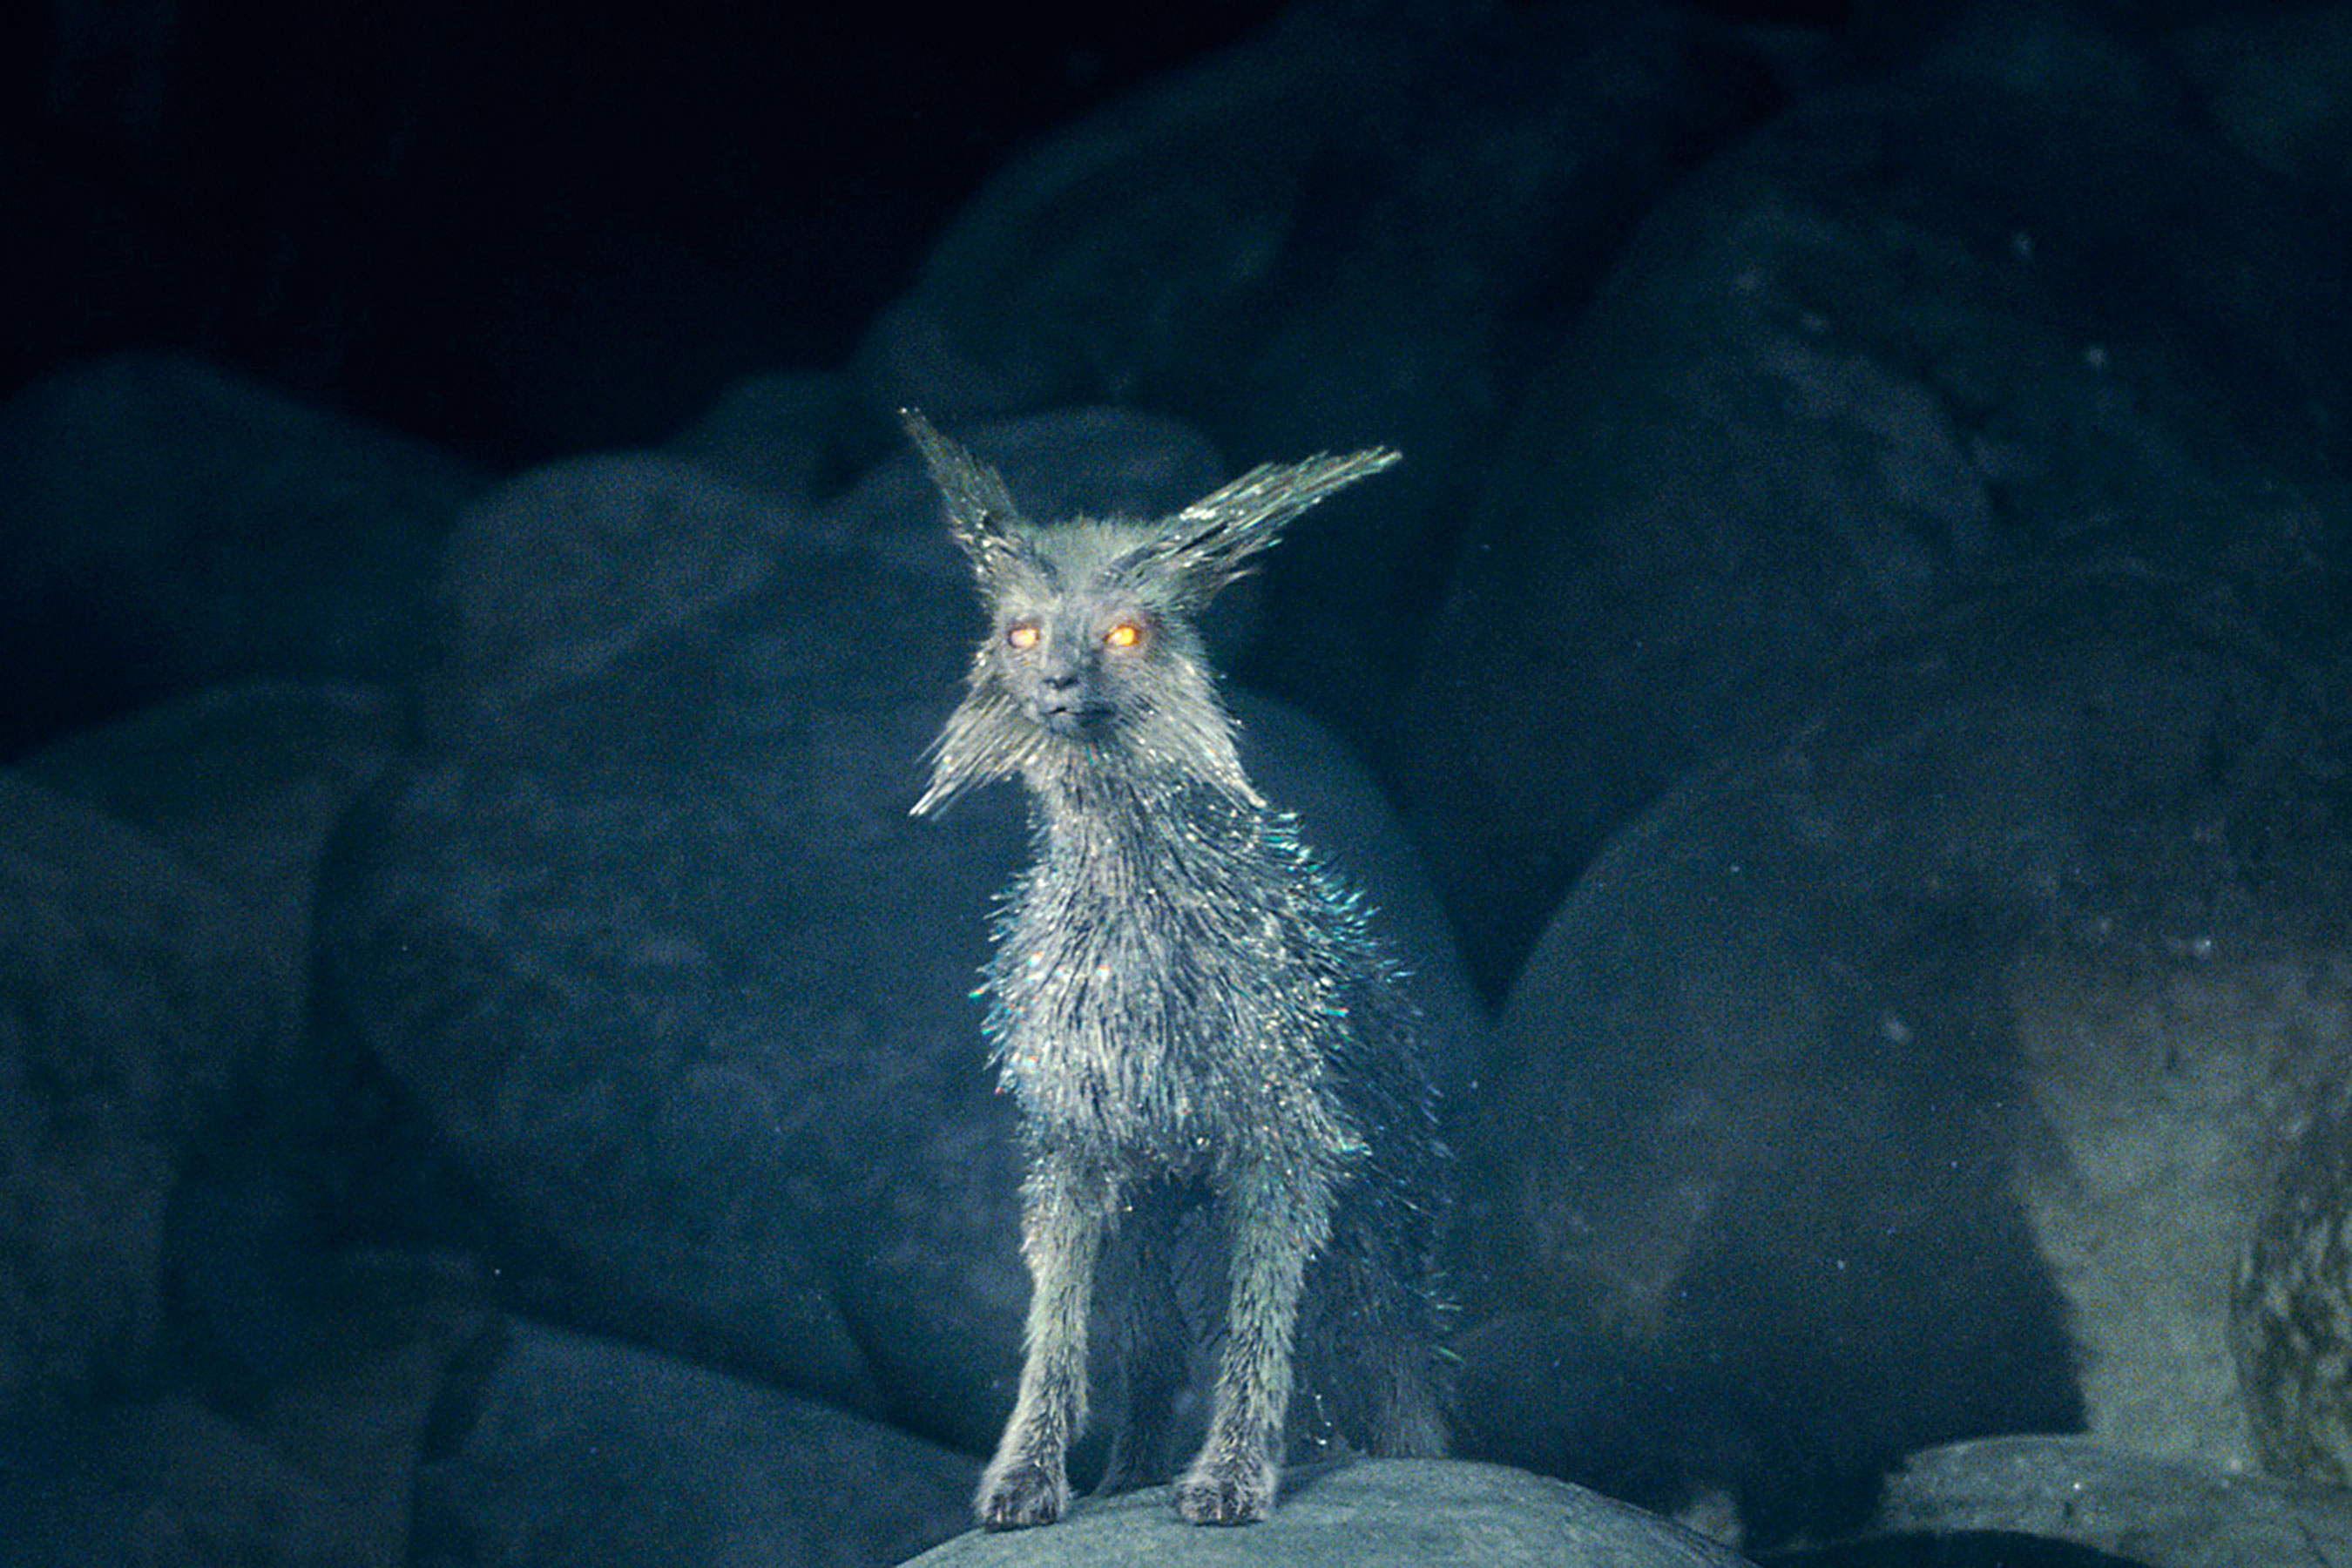 Crystal Foxes Of Crait Star Wars The Last Jedi Hd Movies 4k Wallpapers Images Backgrounds Photos And Pictures